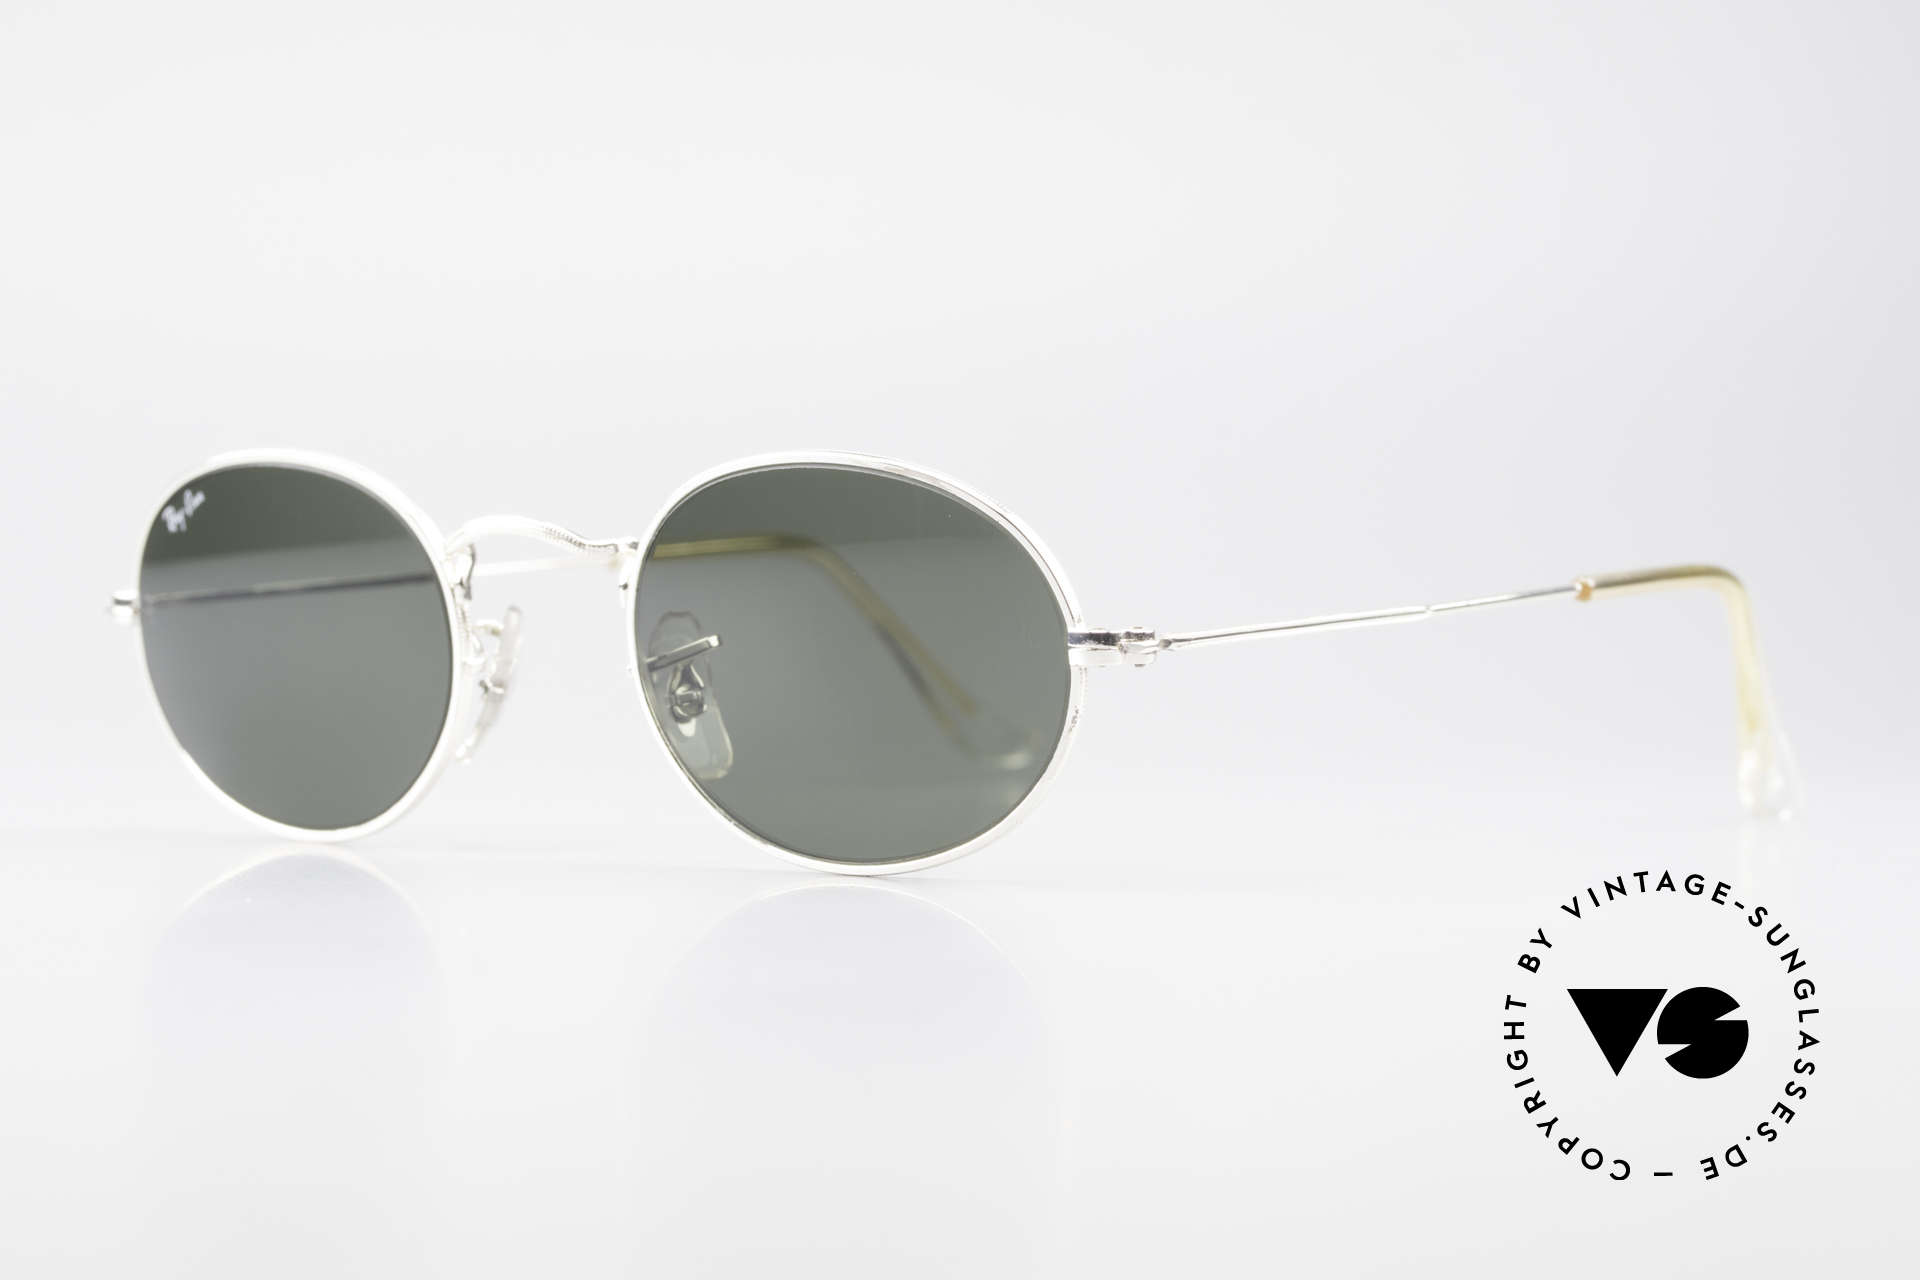 Ray Ban Classic Style I Old Oval B&L USA Sunglasses, best quality by Bausch&Lomb (B&L), 100% UV, Made for Men and Women